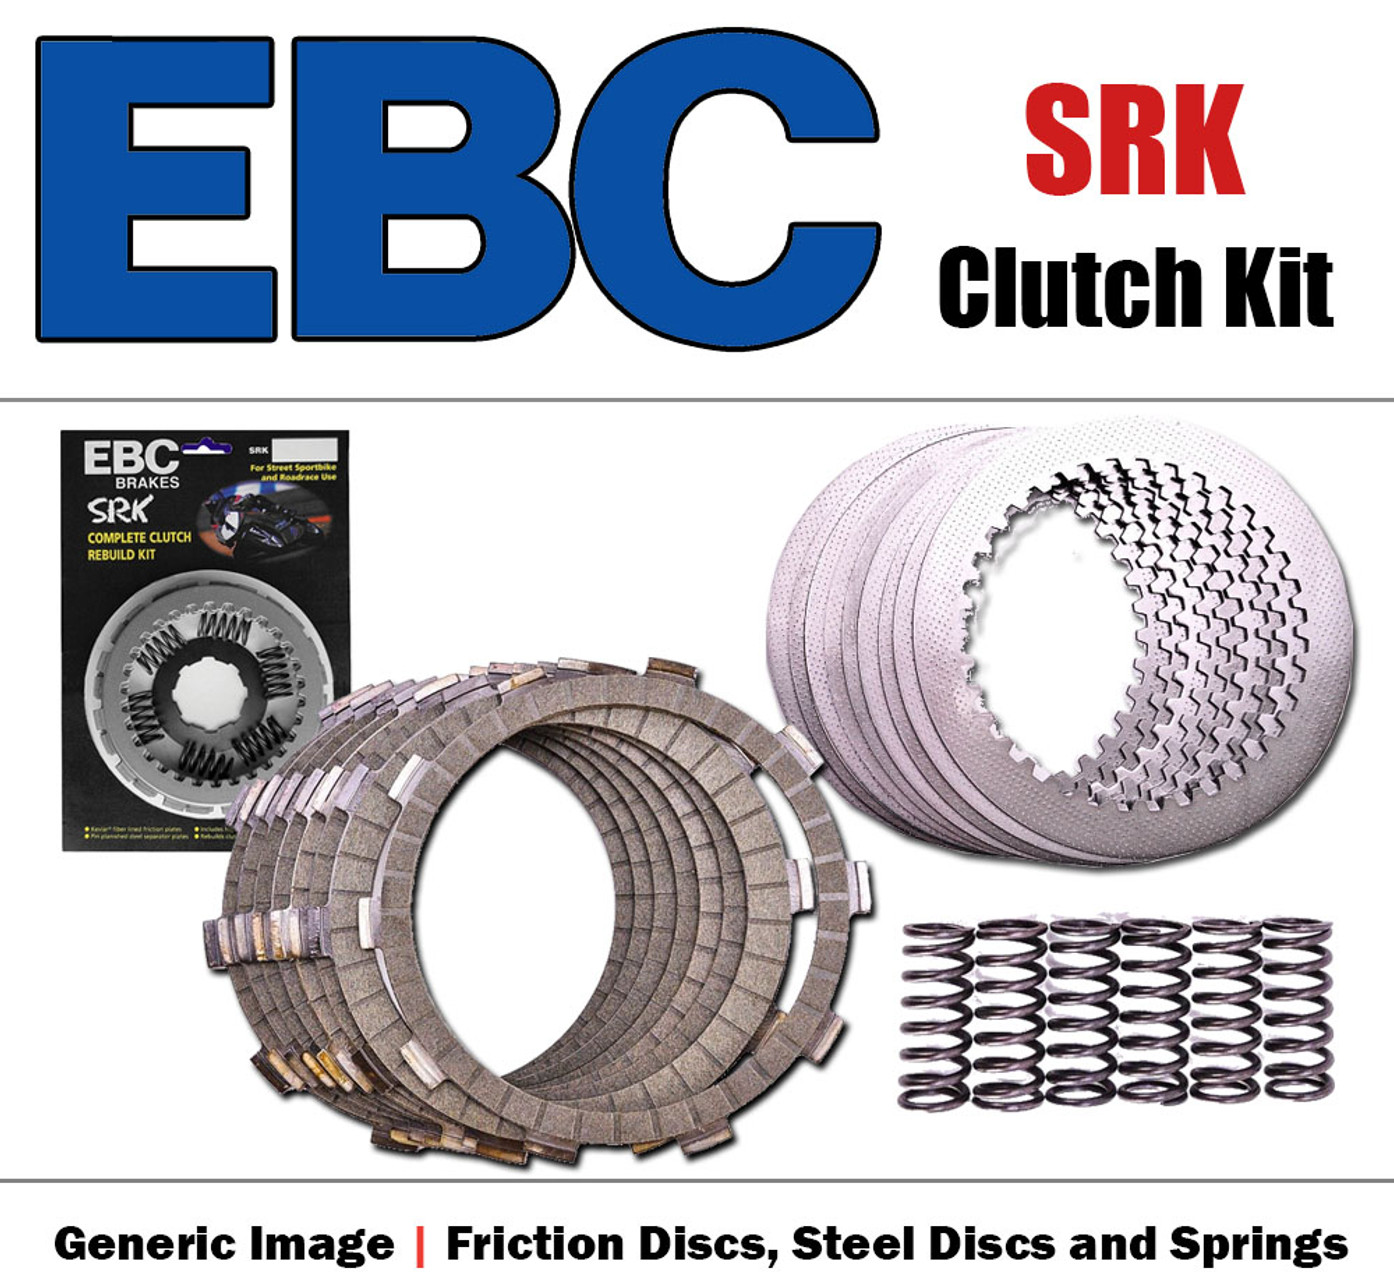 EBC Brakes SRK7 SRK Clutch with Steel Separator Plates and Springs